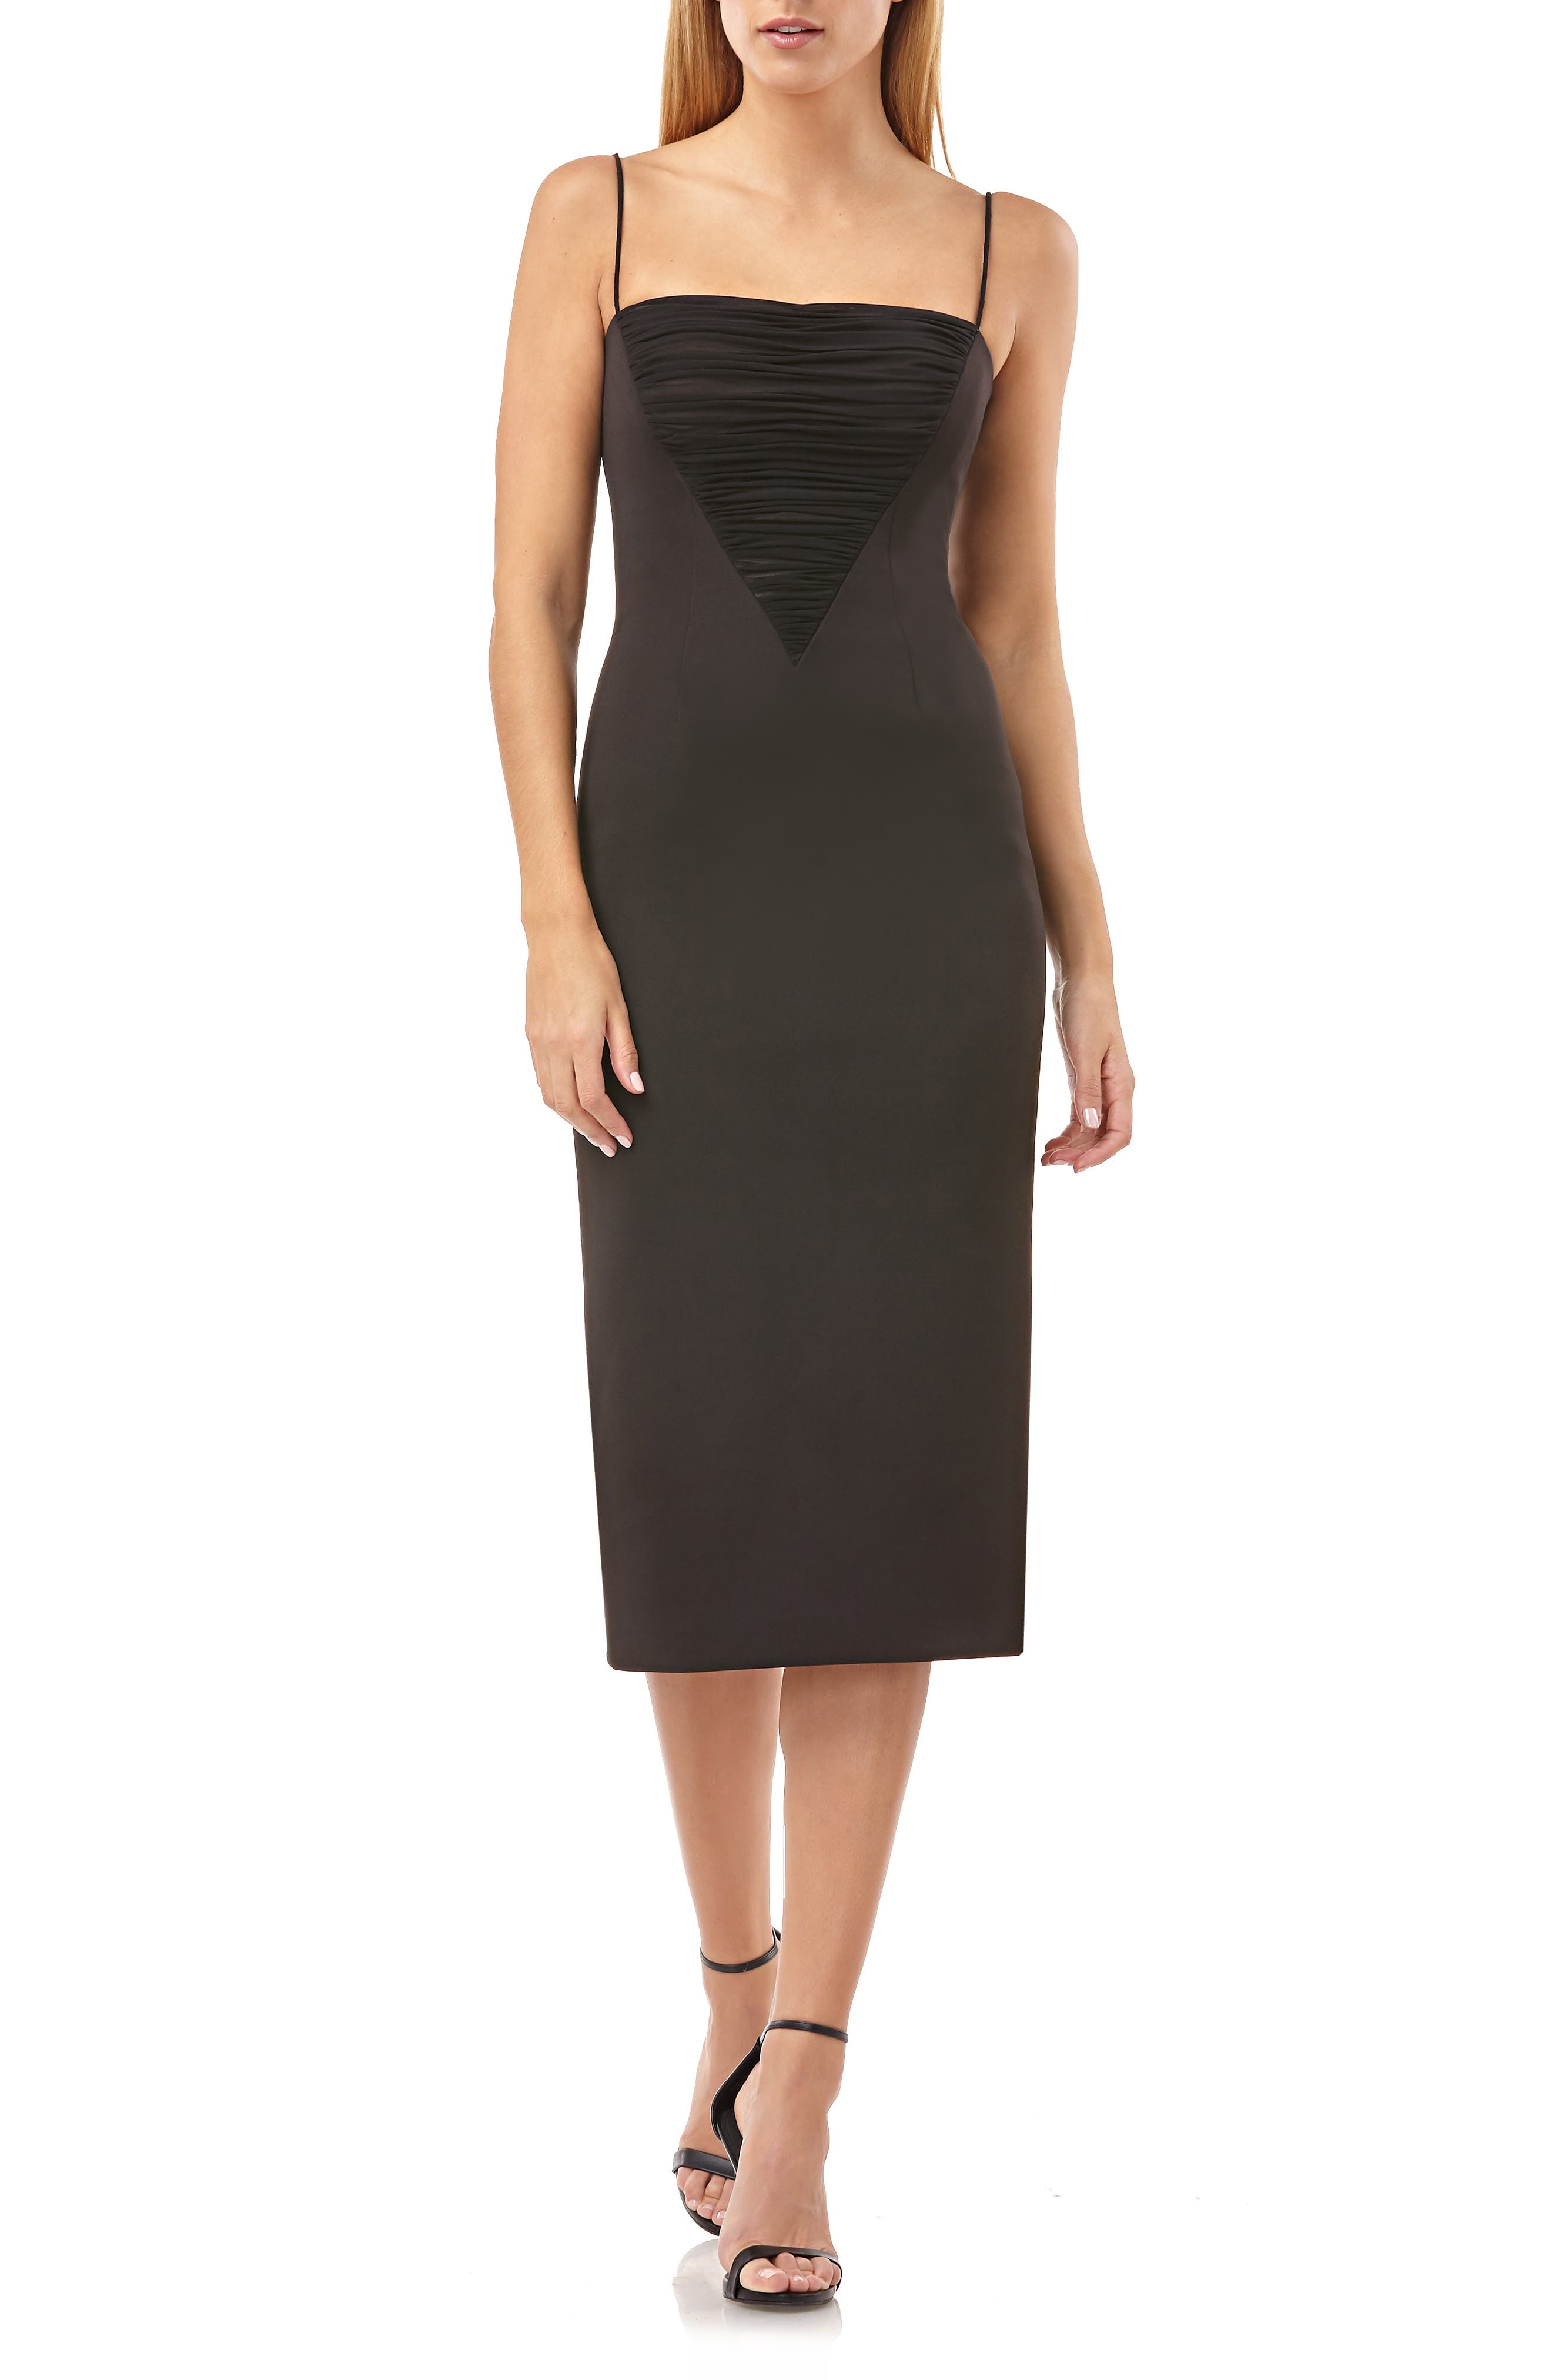 Js Collections Shirred Mesh Inset Cocktail Dress, Black